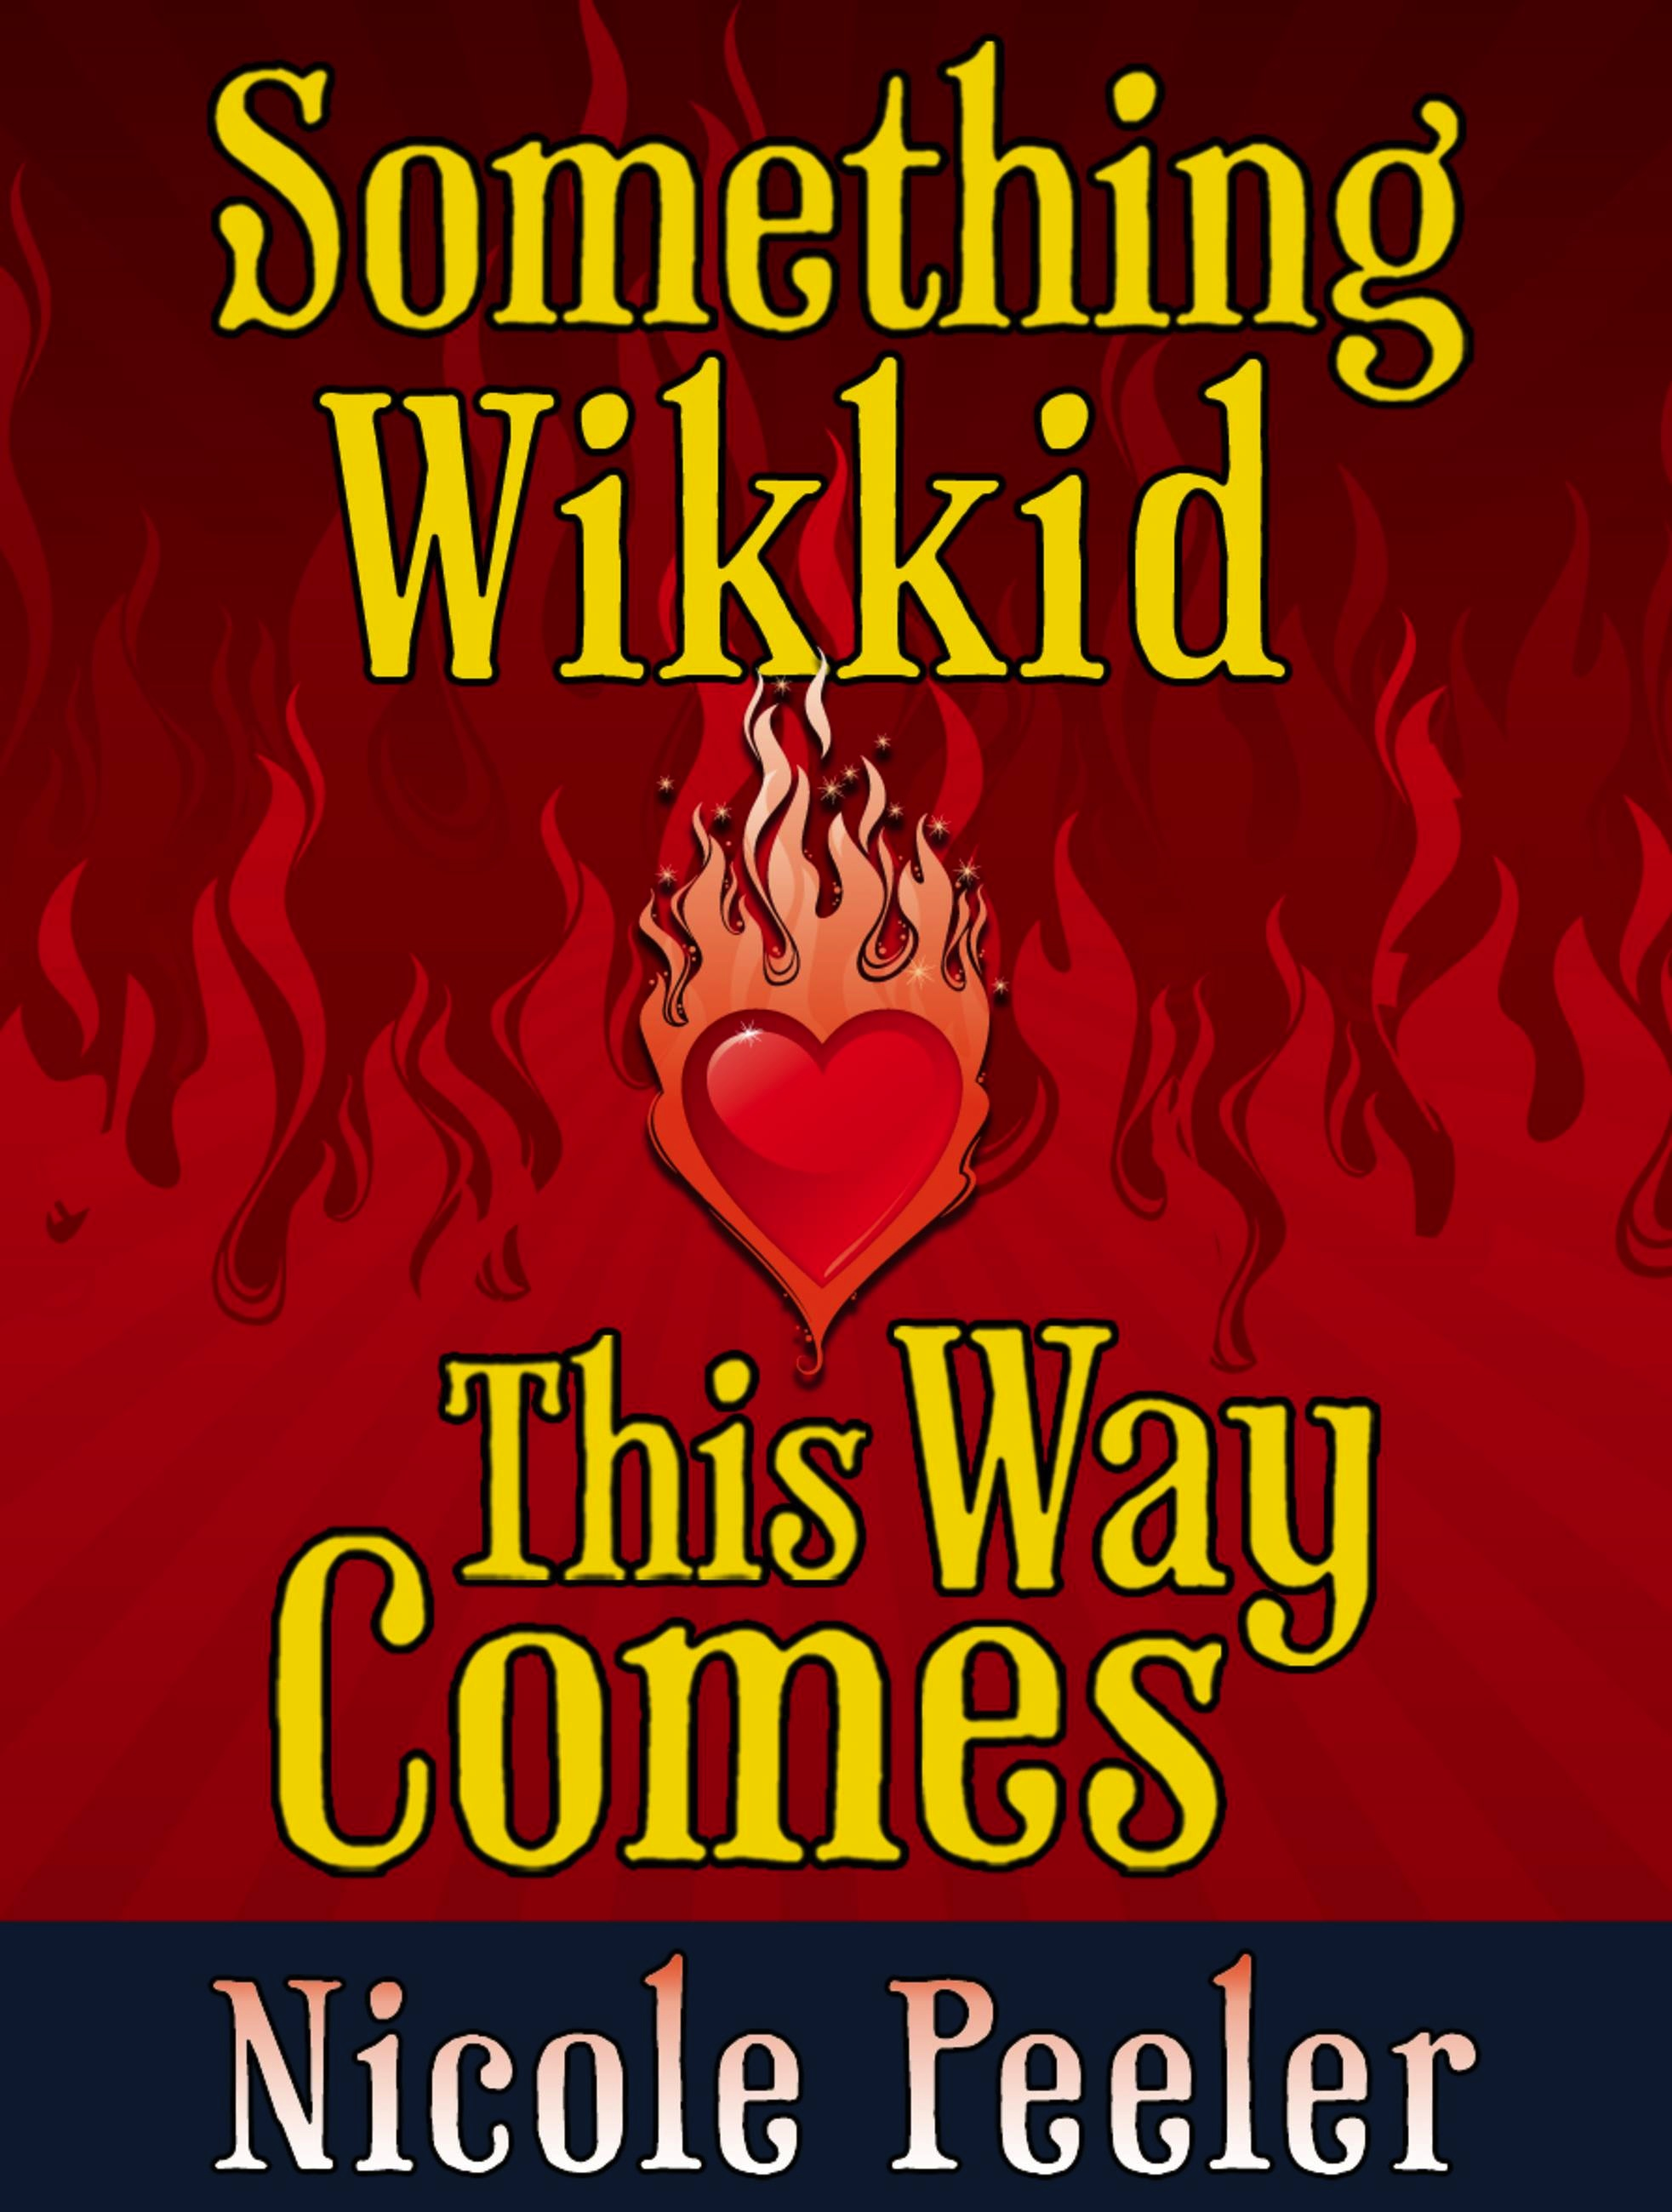 Something Wikkid This Way Comes